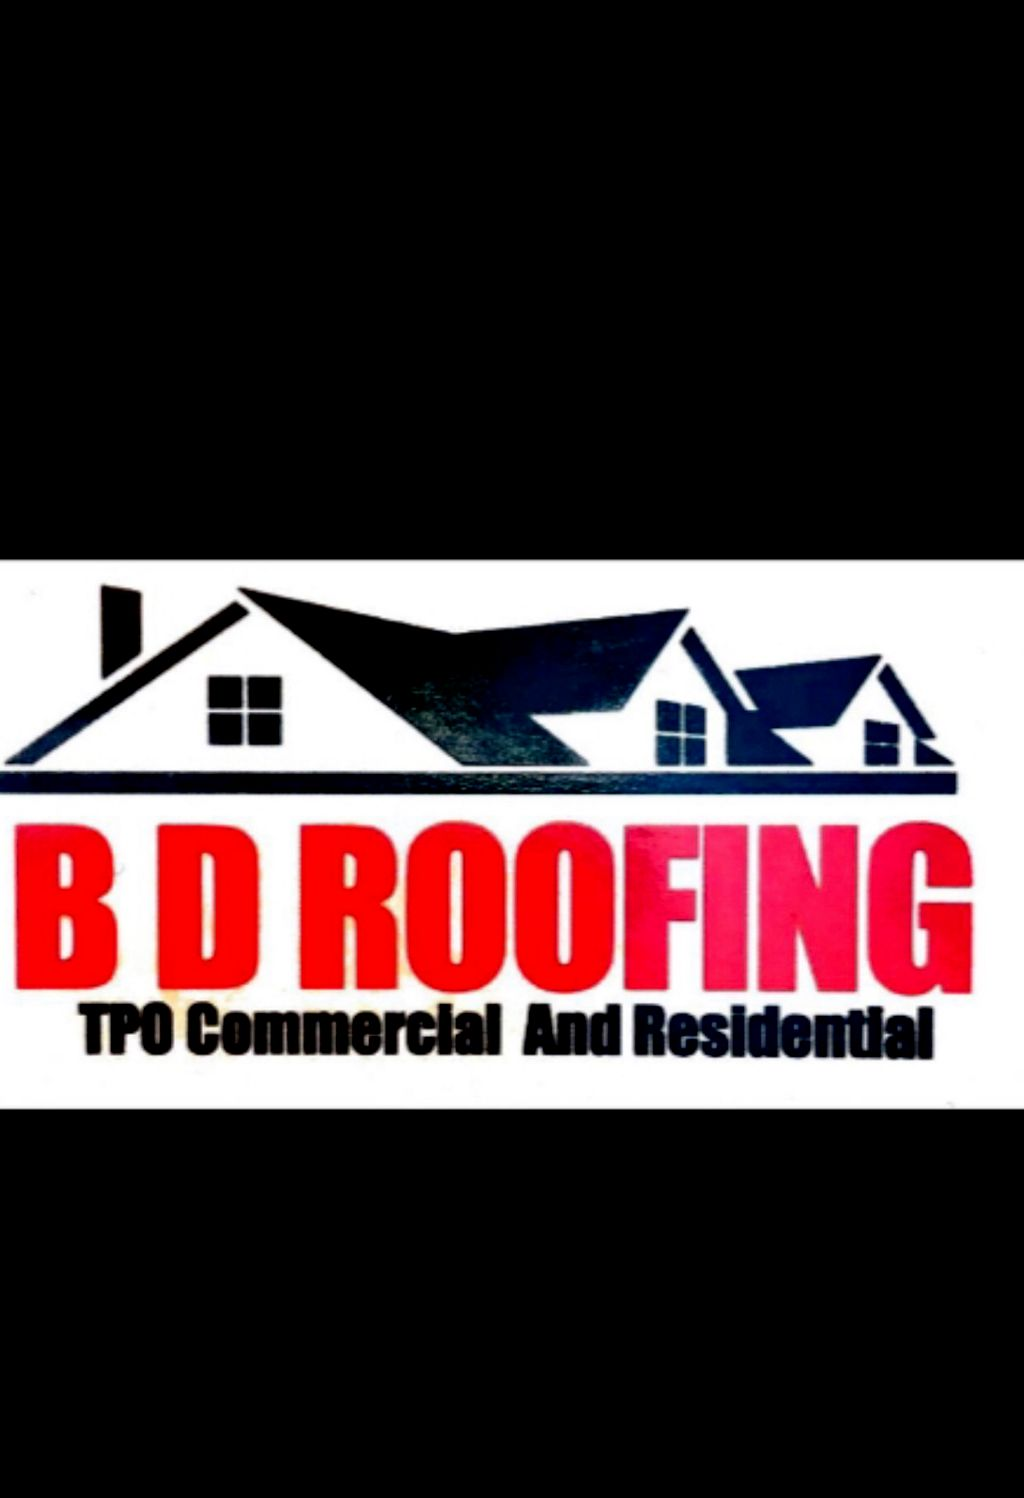 BD Roofing & Contracting